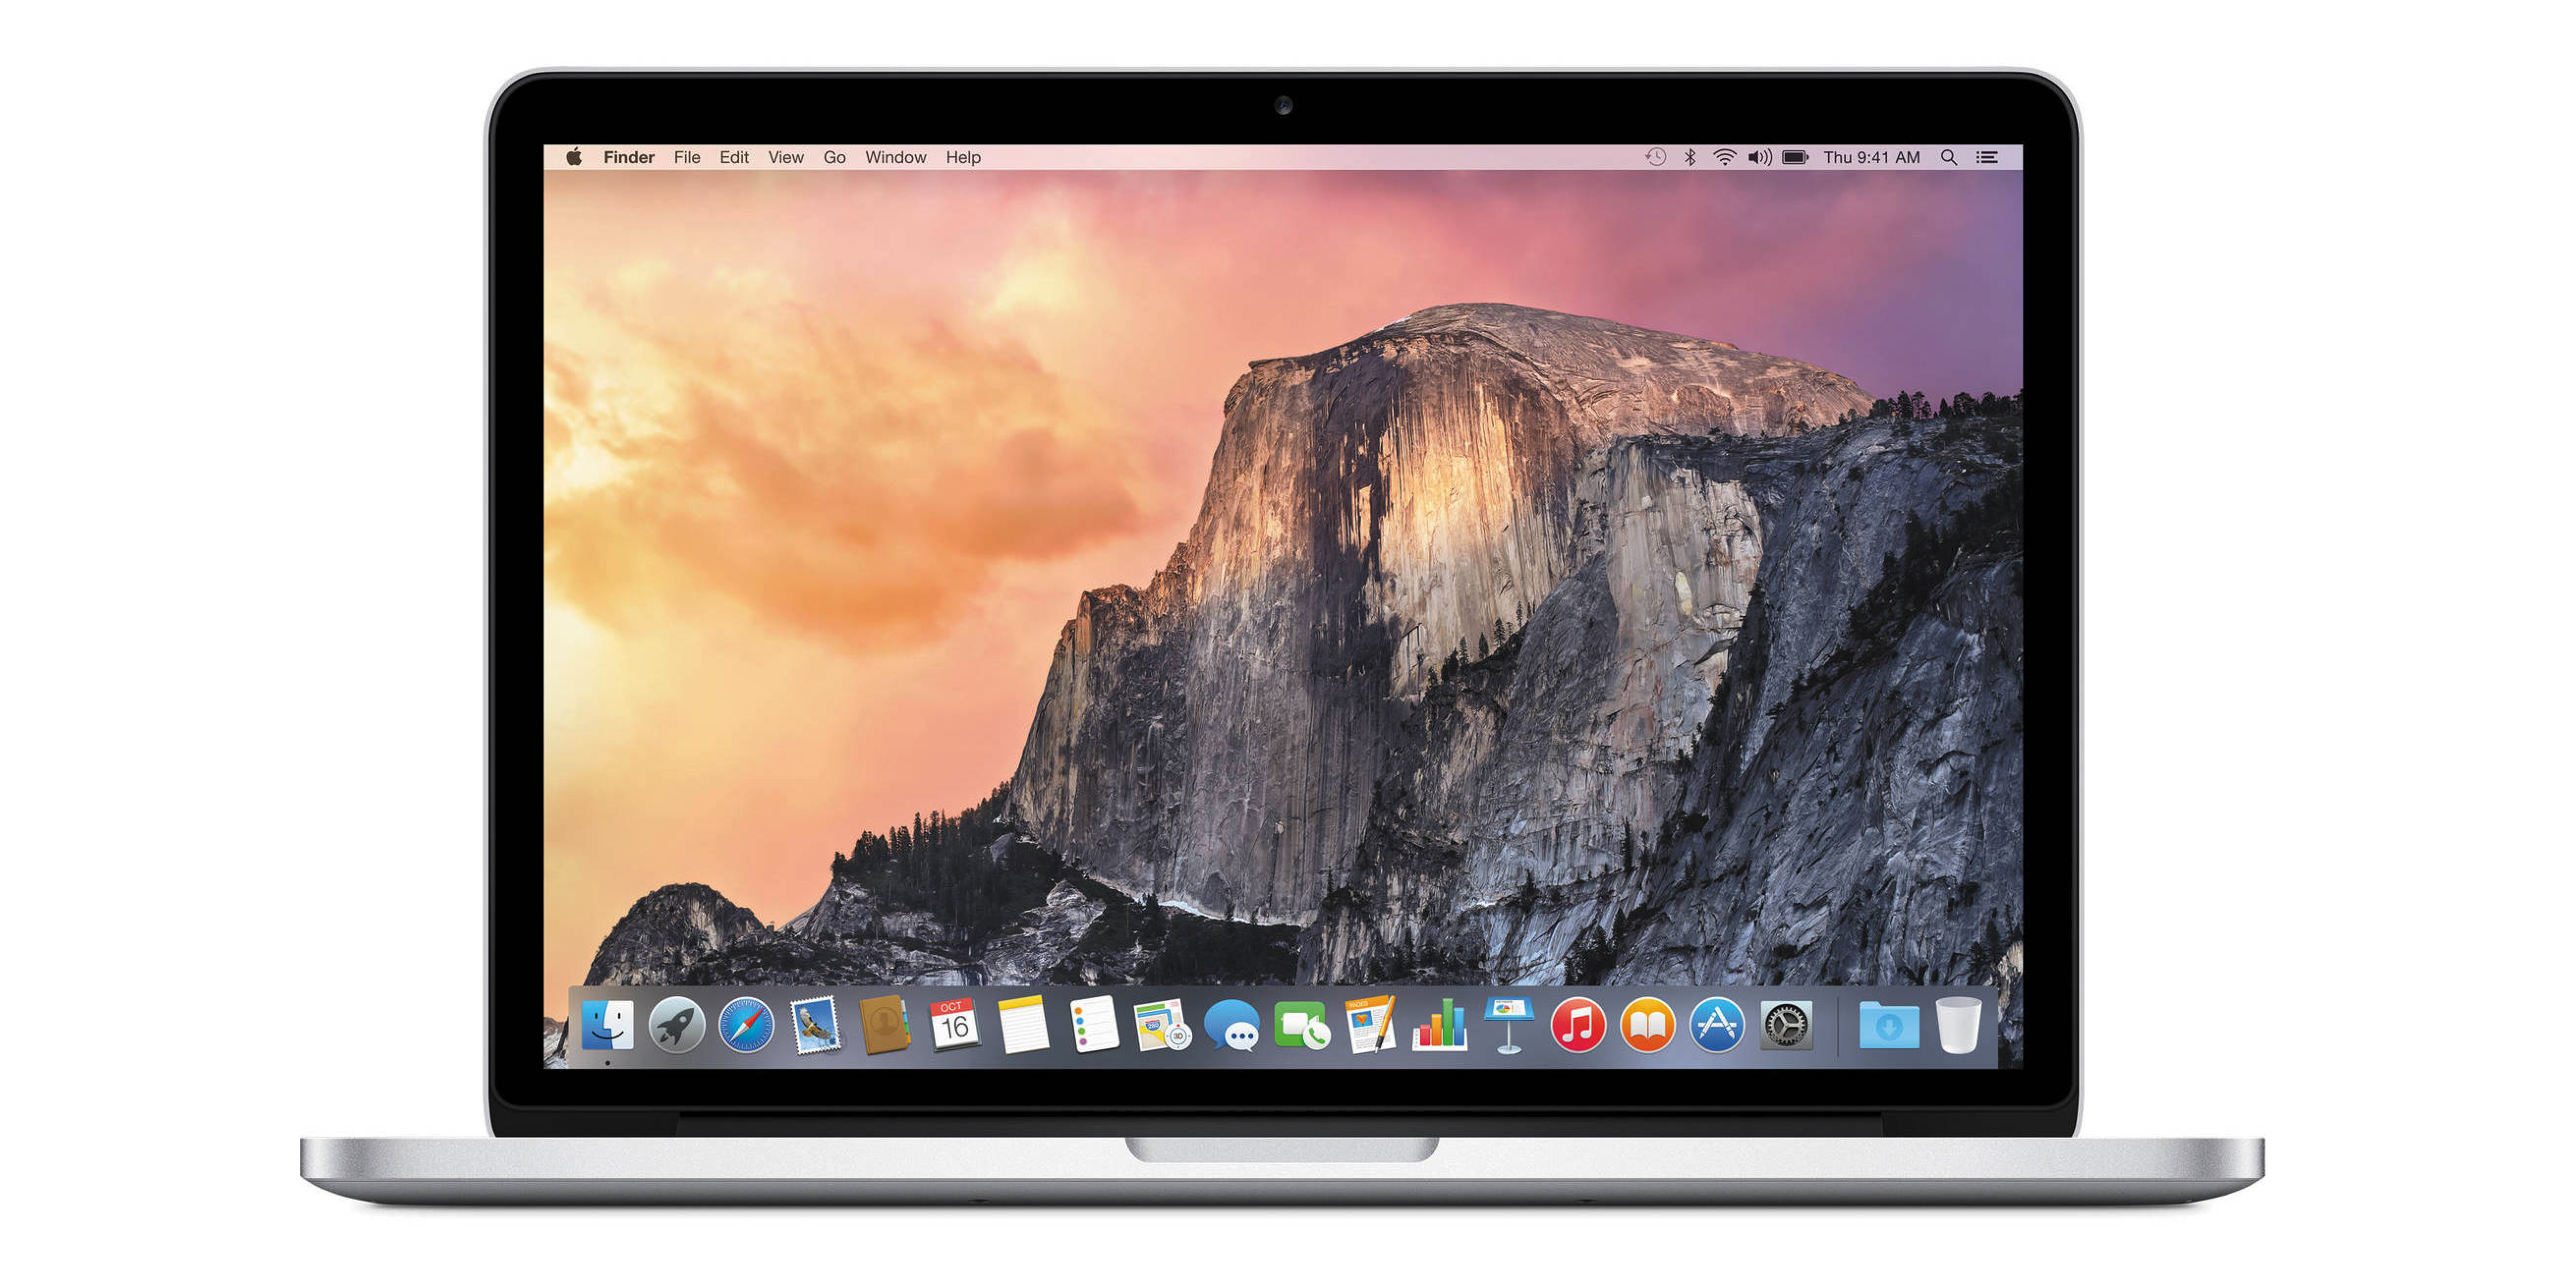 13-inch-macbook-pro-with-retina-display-and-force-touch-mf840lla-sale-02